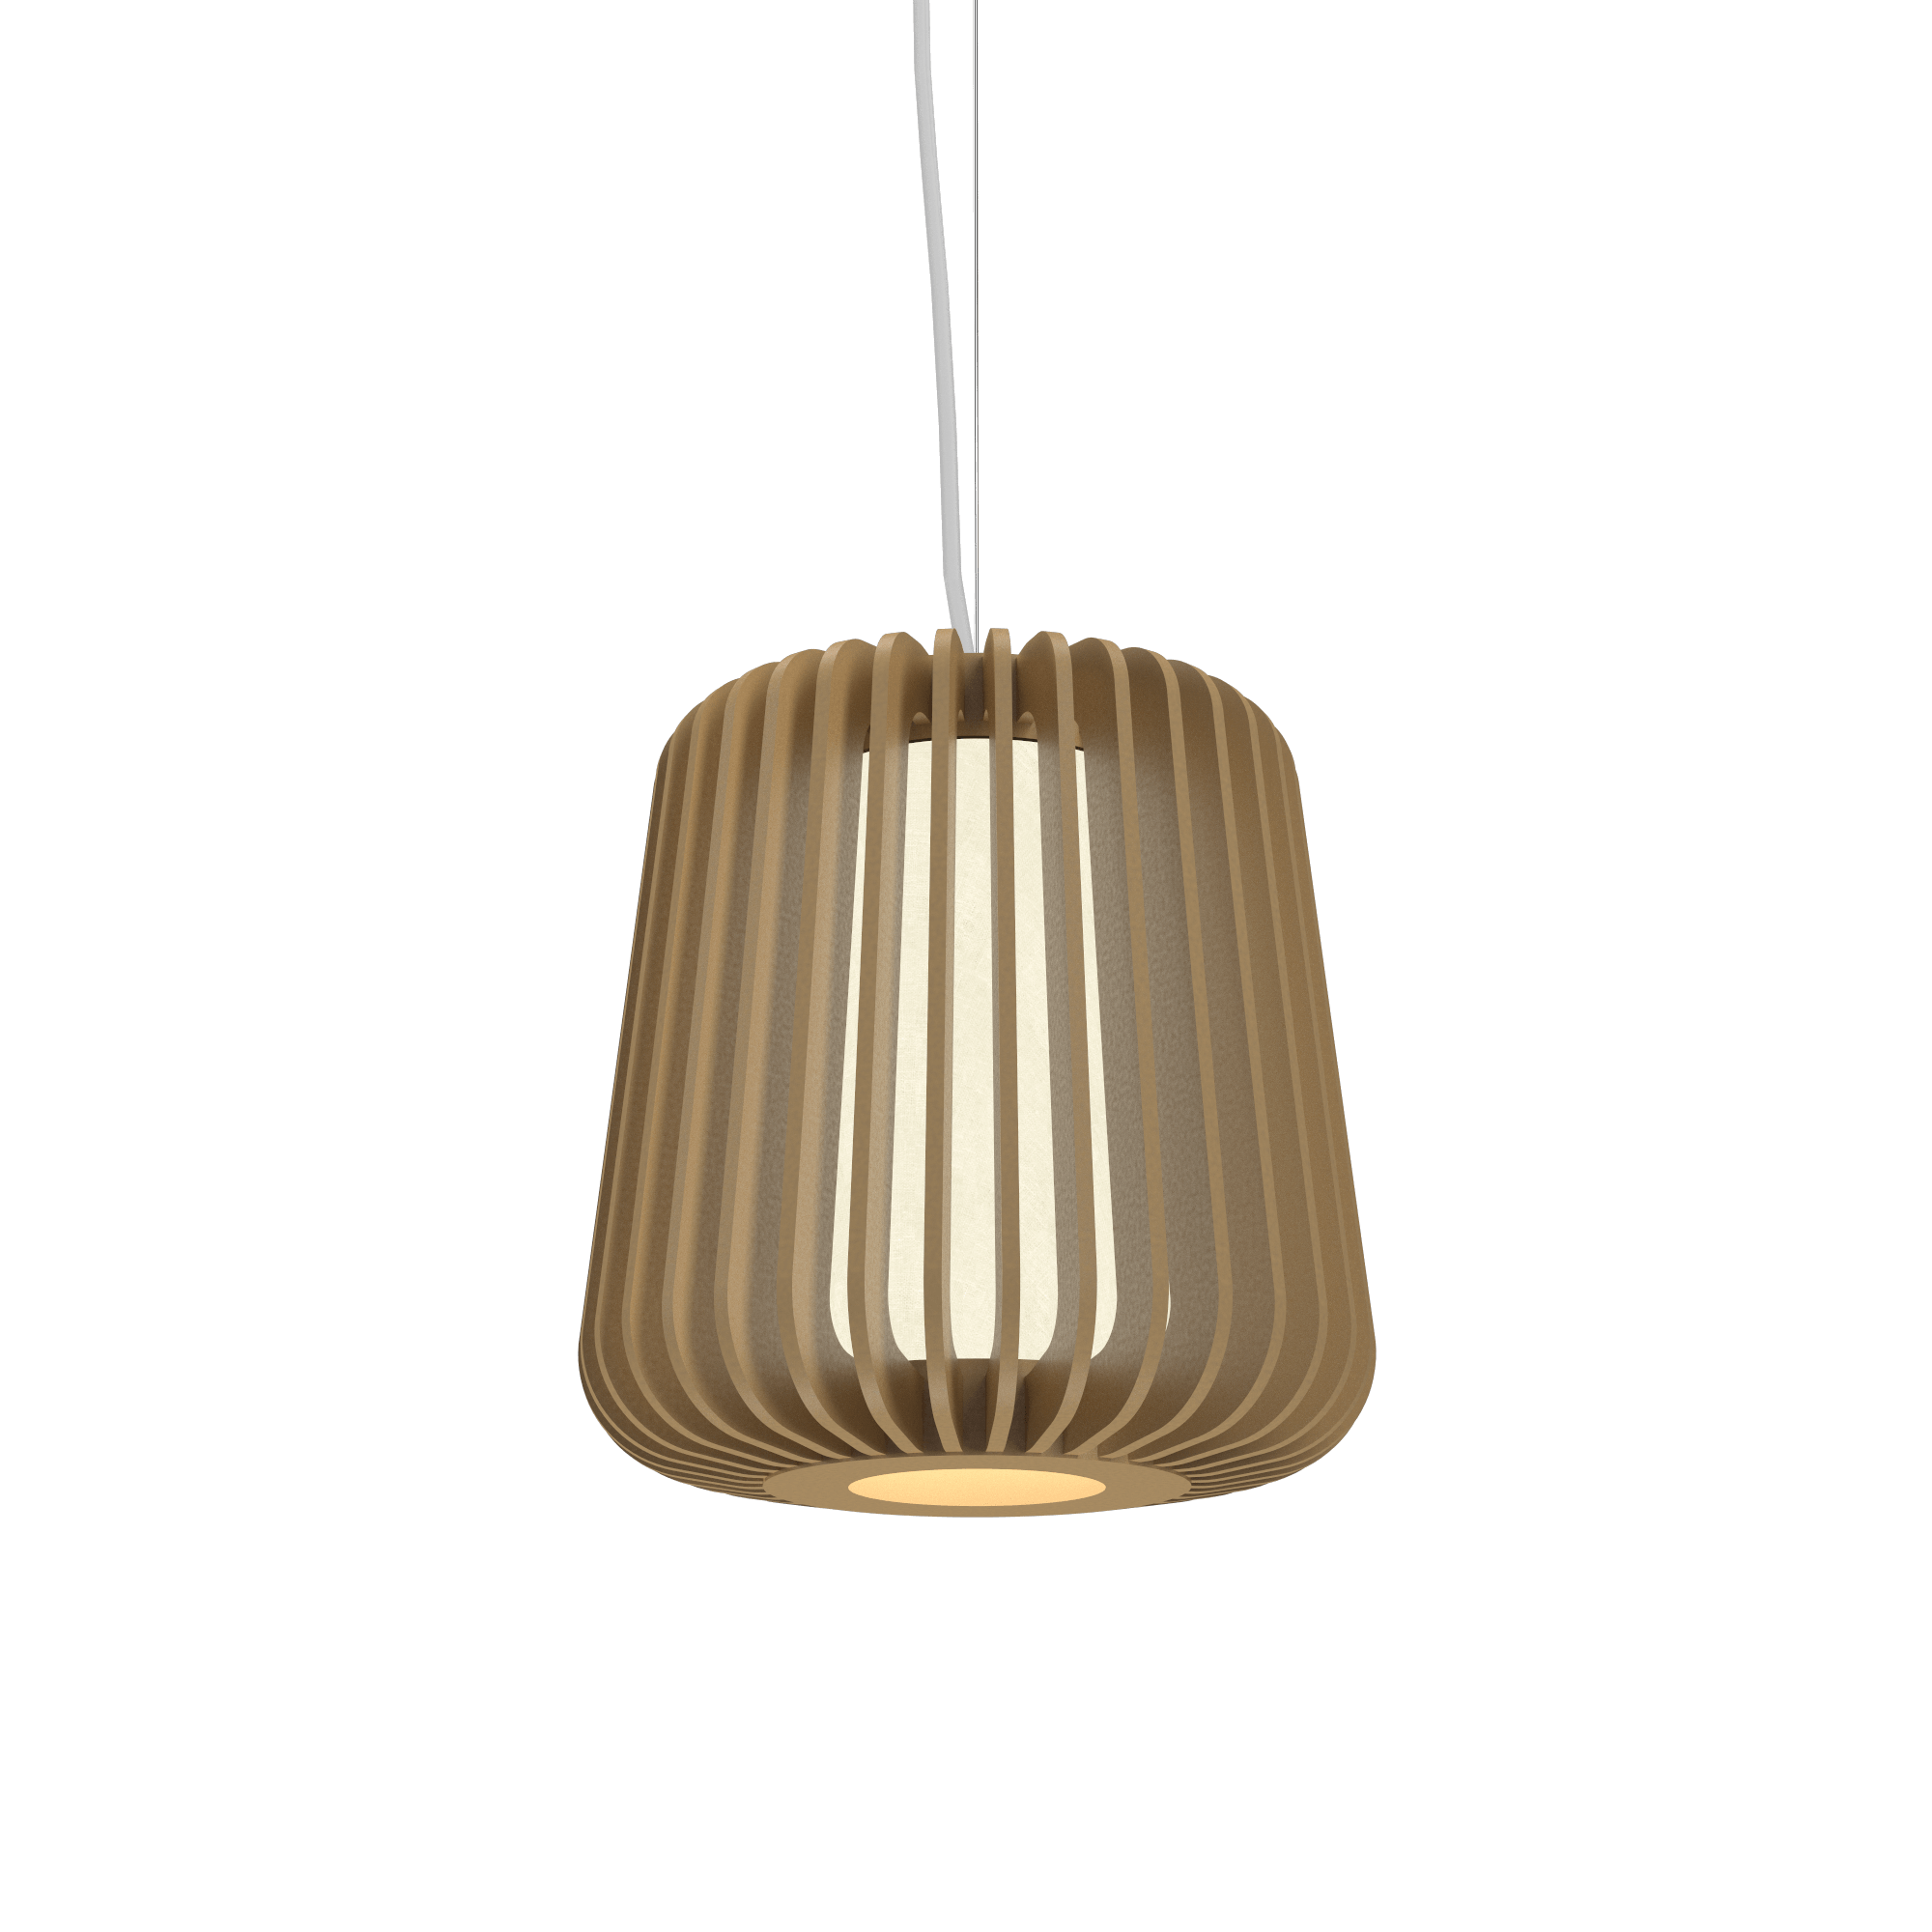 Pendant Lamp Accord Stecche Di Legno 1426 - Stecche Di Legno Line Accord Lighting | 27. Gold